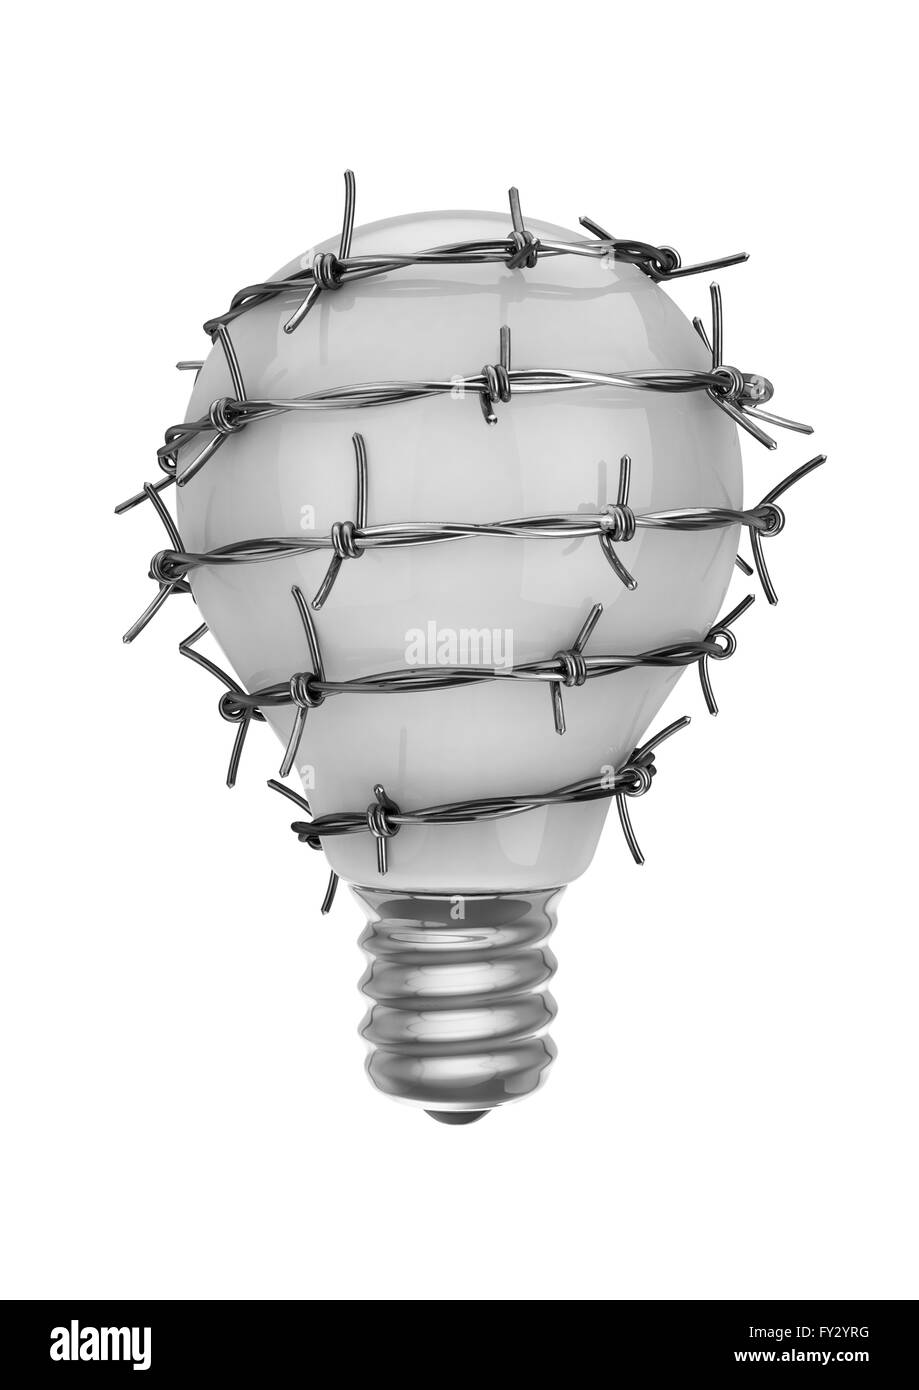 Ideas of freedom / 3D render of light bulb wrapped in barbed wire - Stock Image